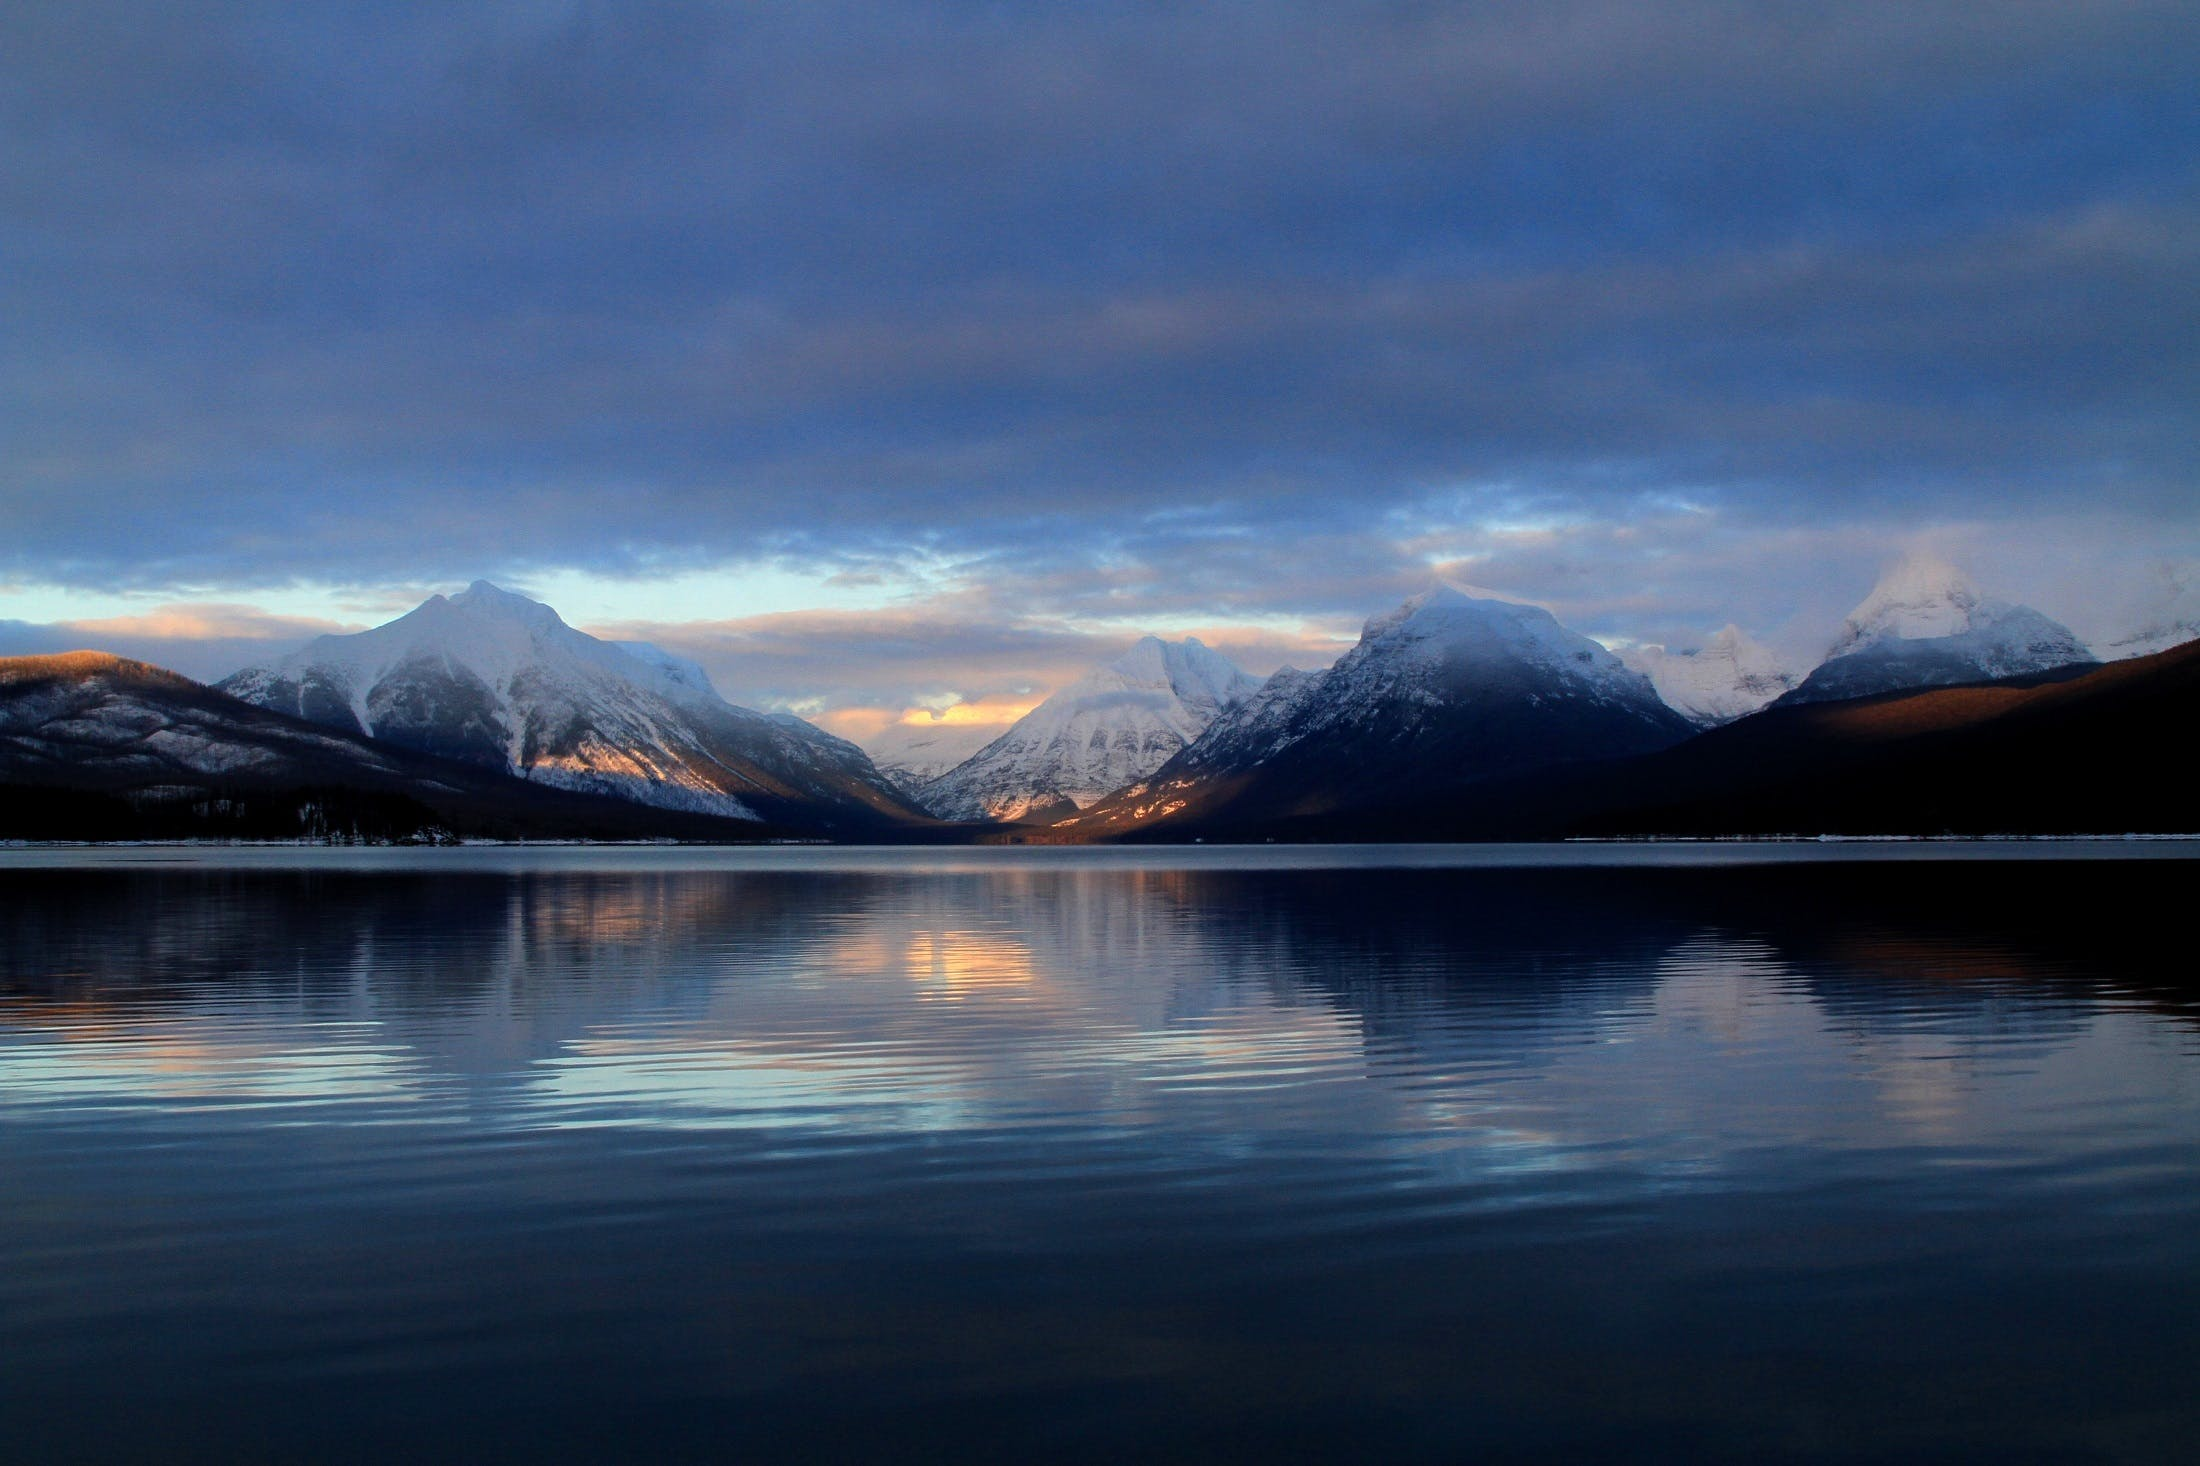 Body of Water in a Distant of Mountains Under White Clouds